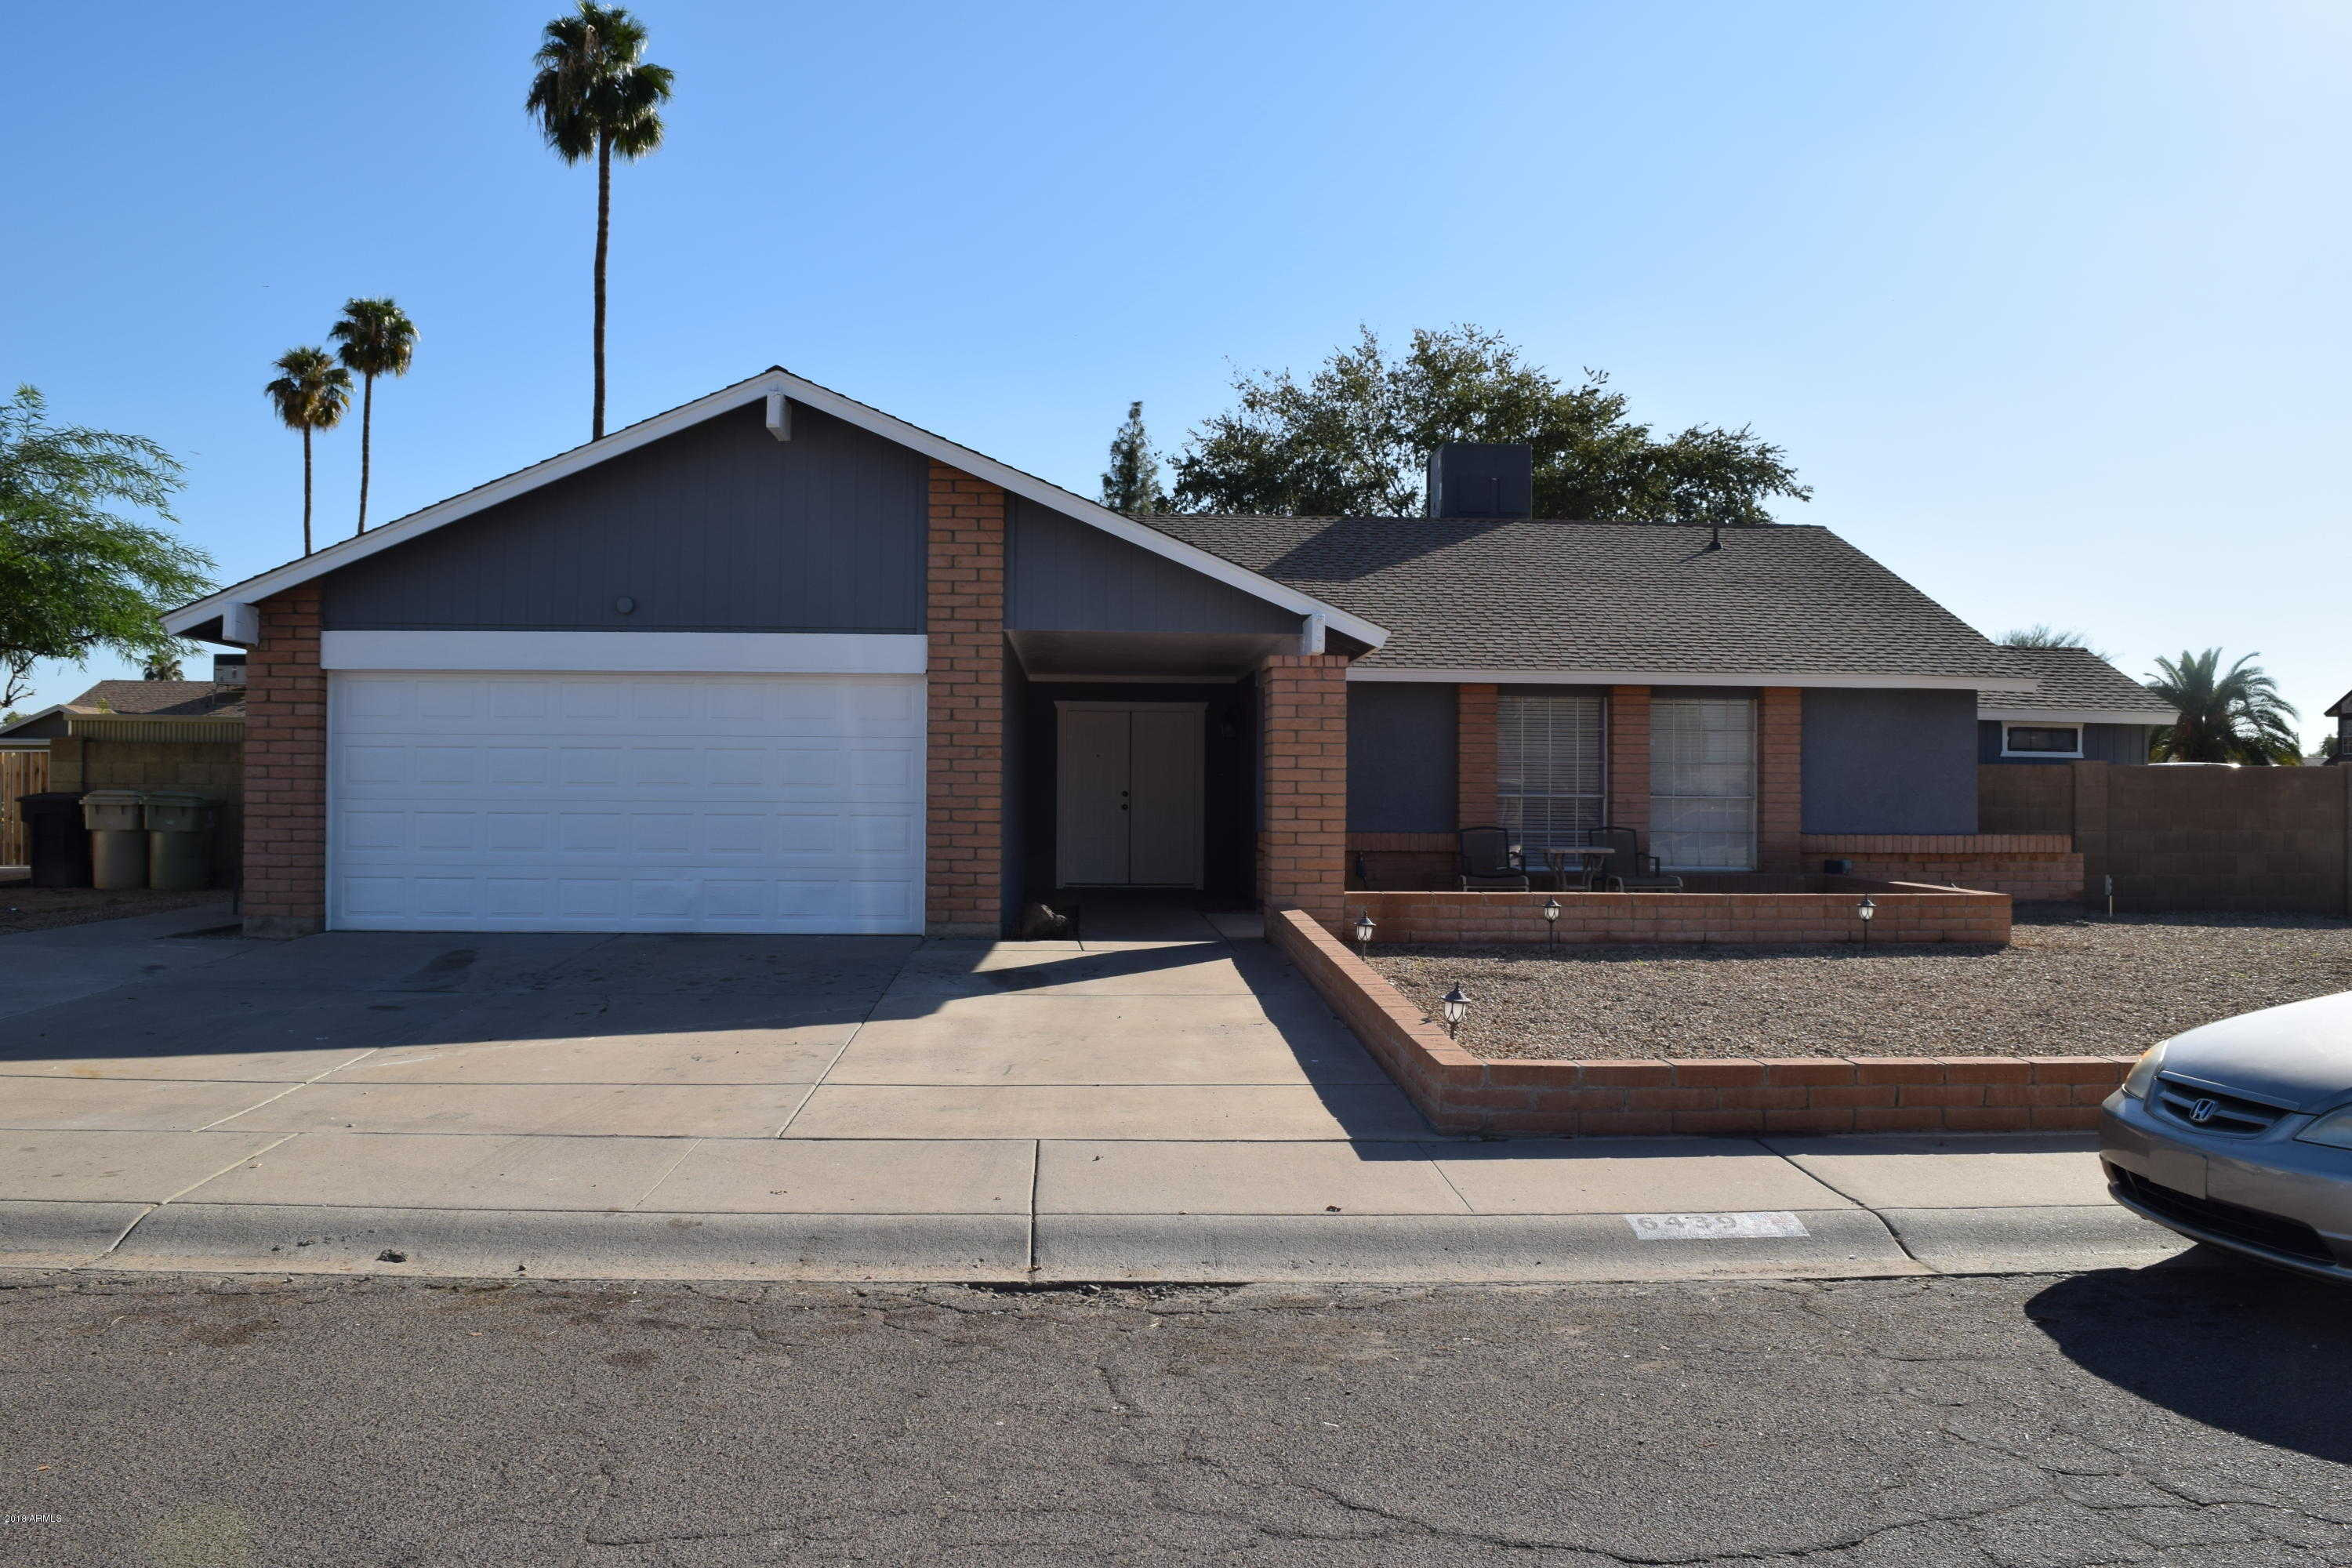 $249,000 - 3Br/2Ba - Home for Sale in Copperwood Unit 4 Lot 313-440, Glendale